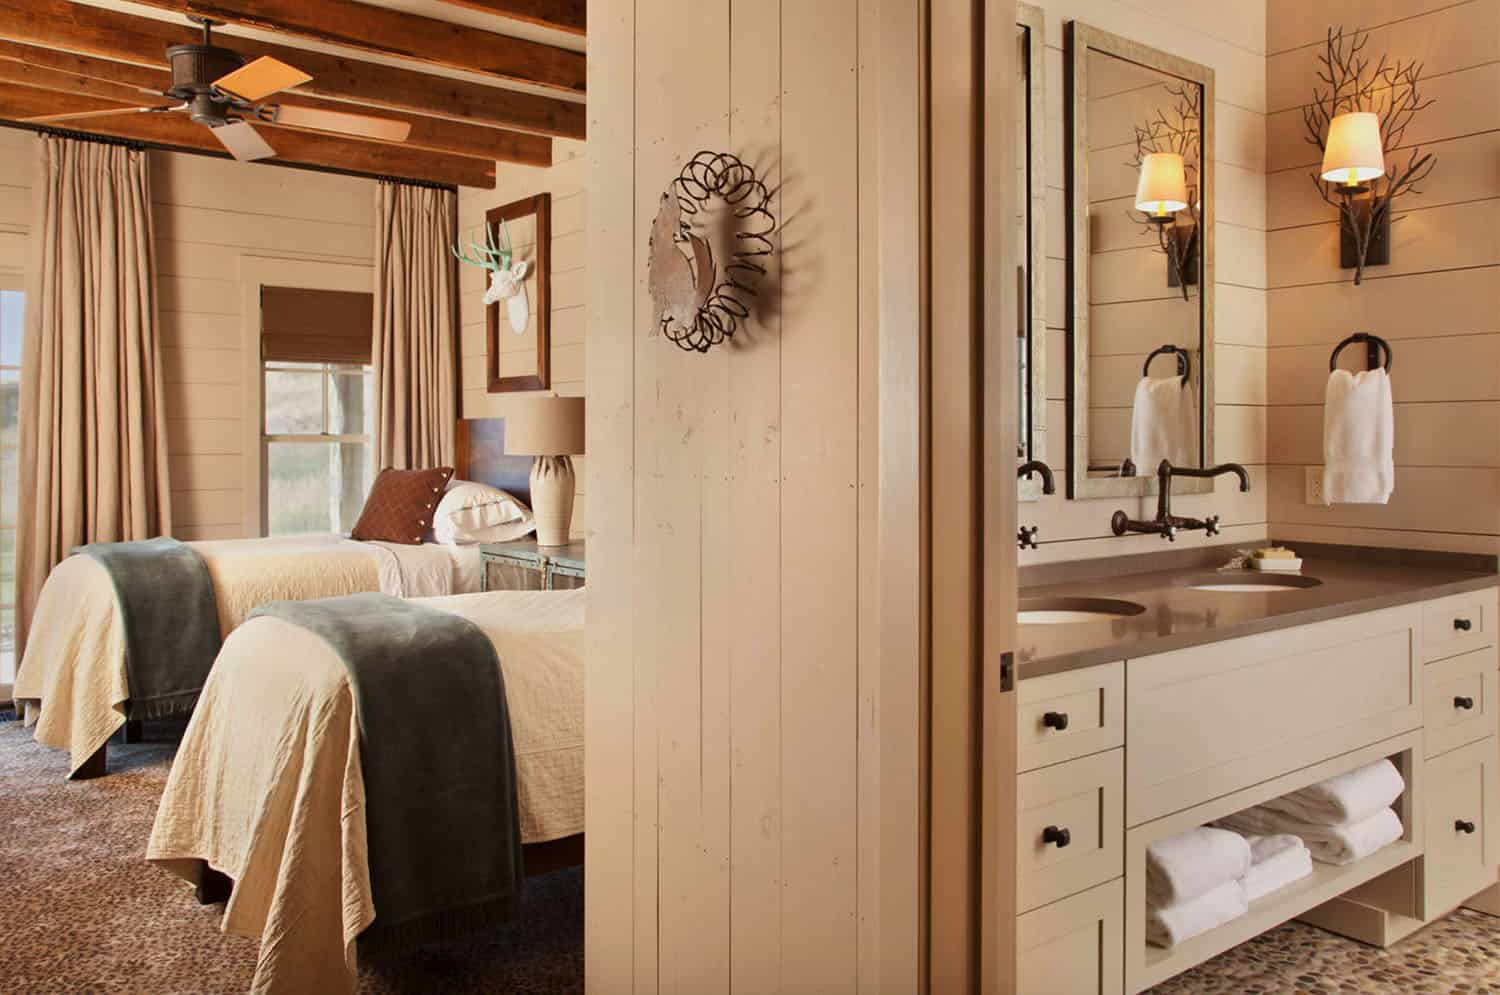 bunkhouse-rustic-bathroom-bedroom